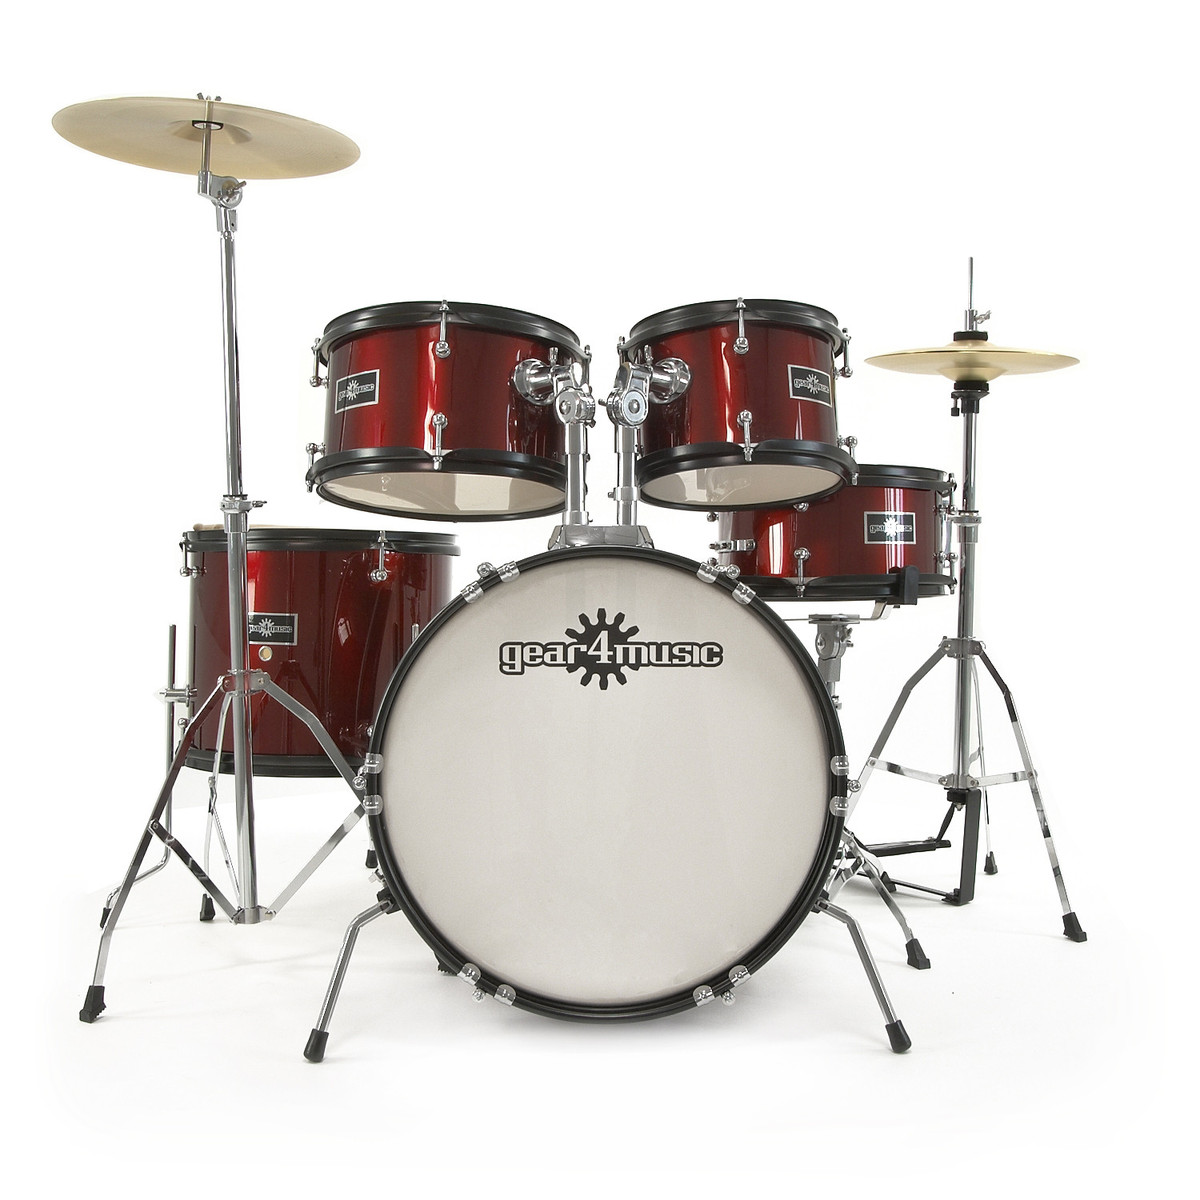 Junior 5 Piece Drum Kit By Gear4music Wine Red Box